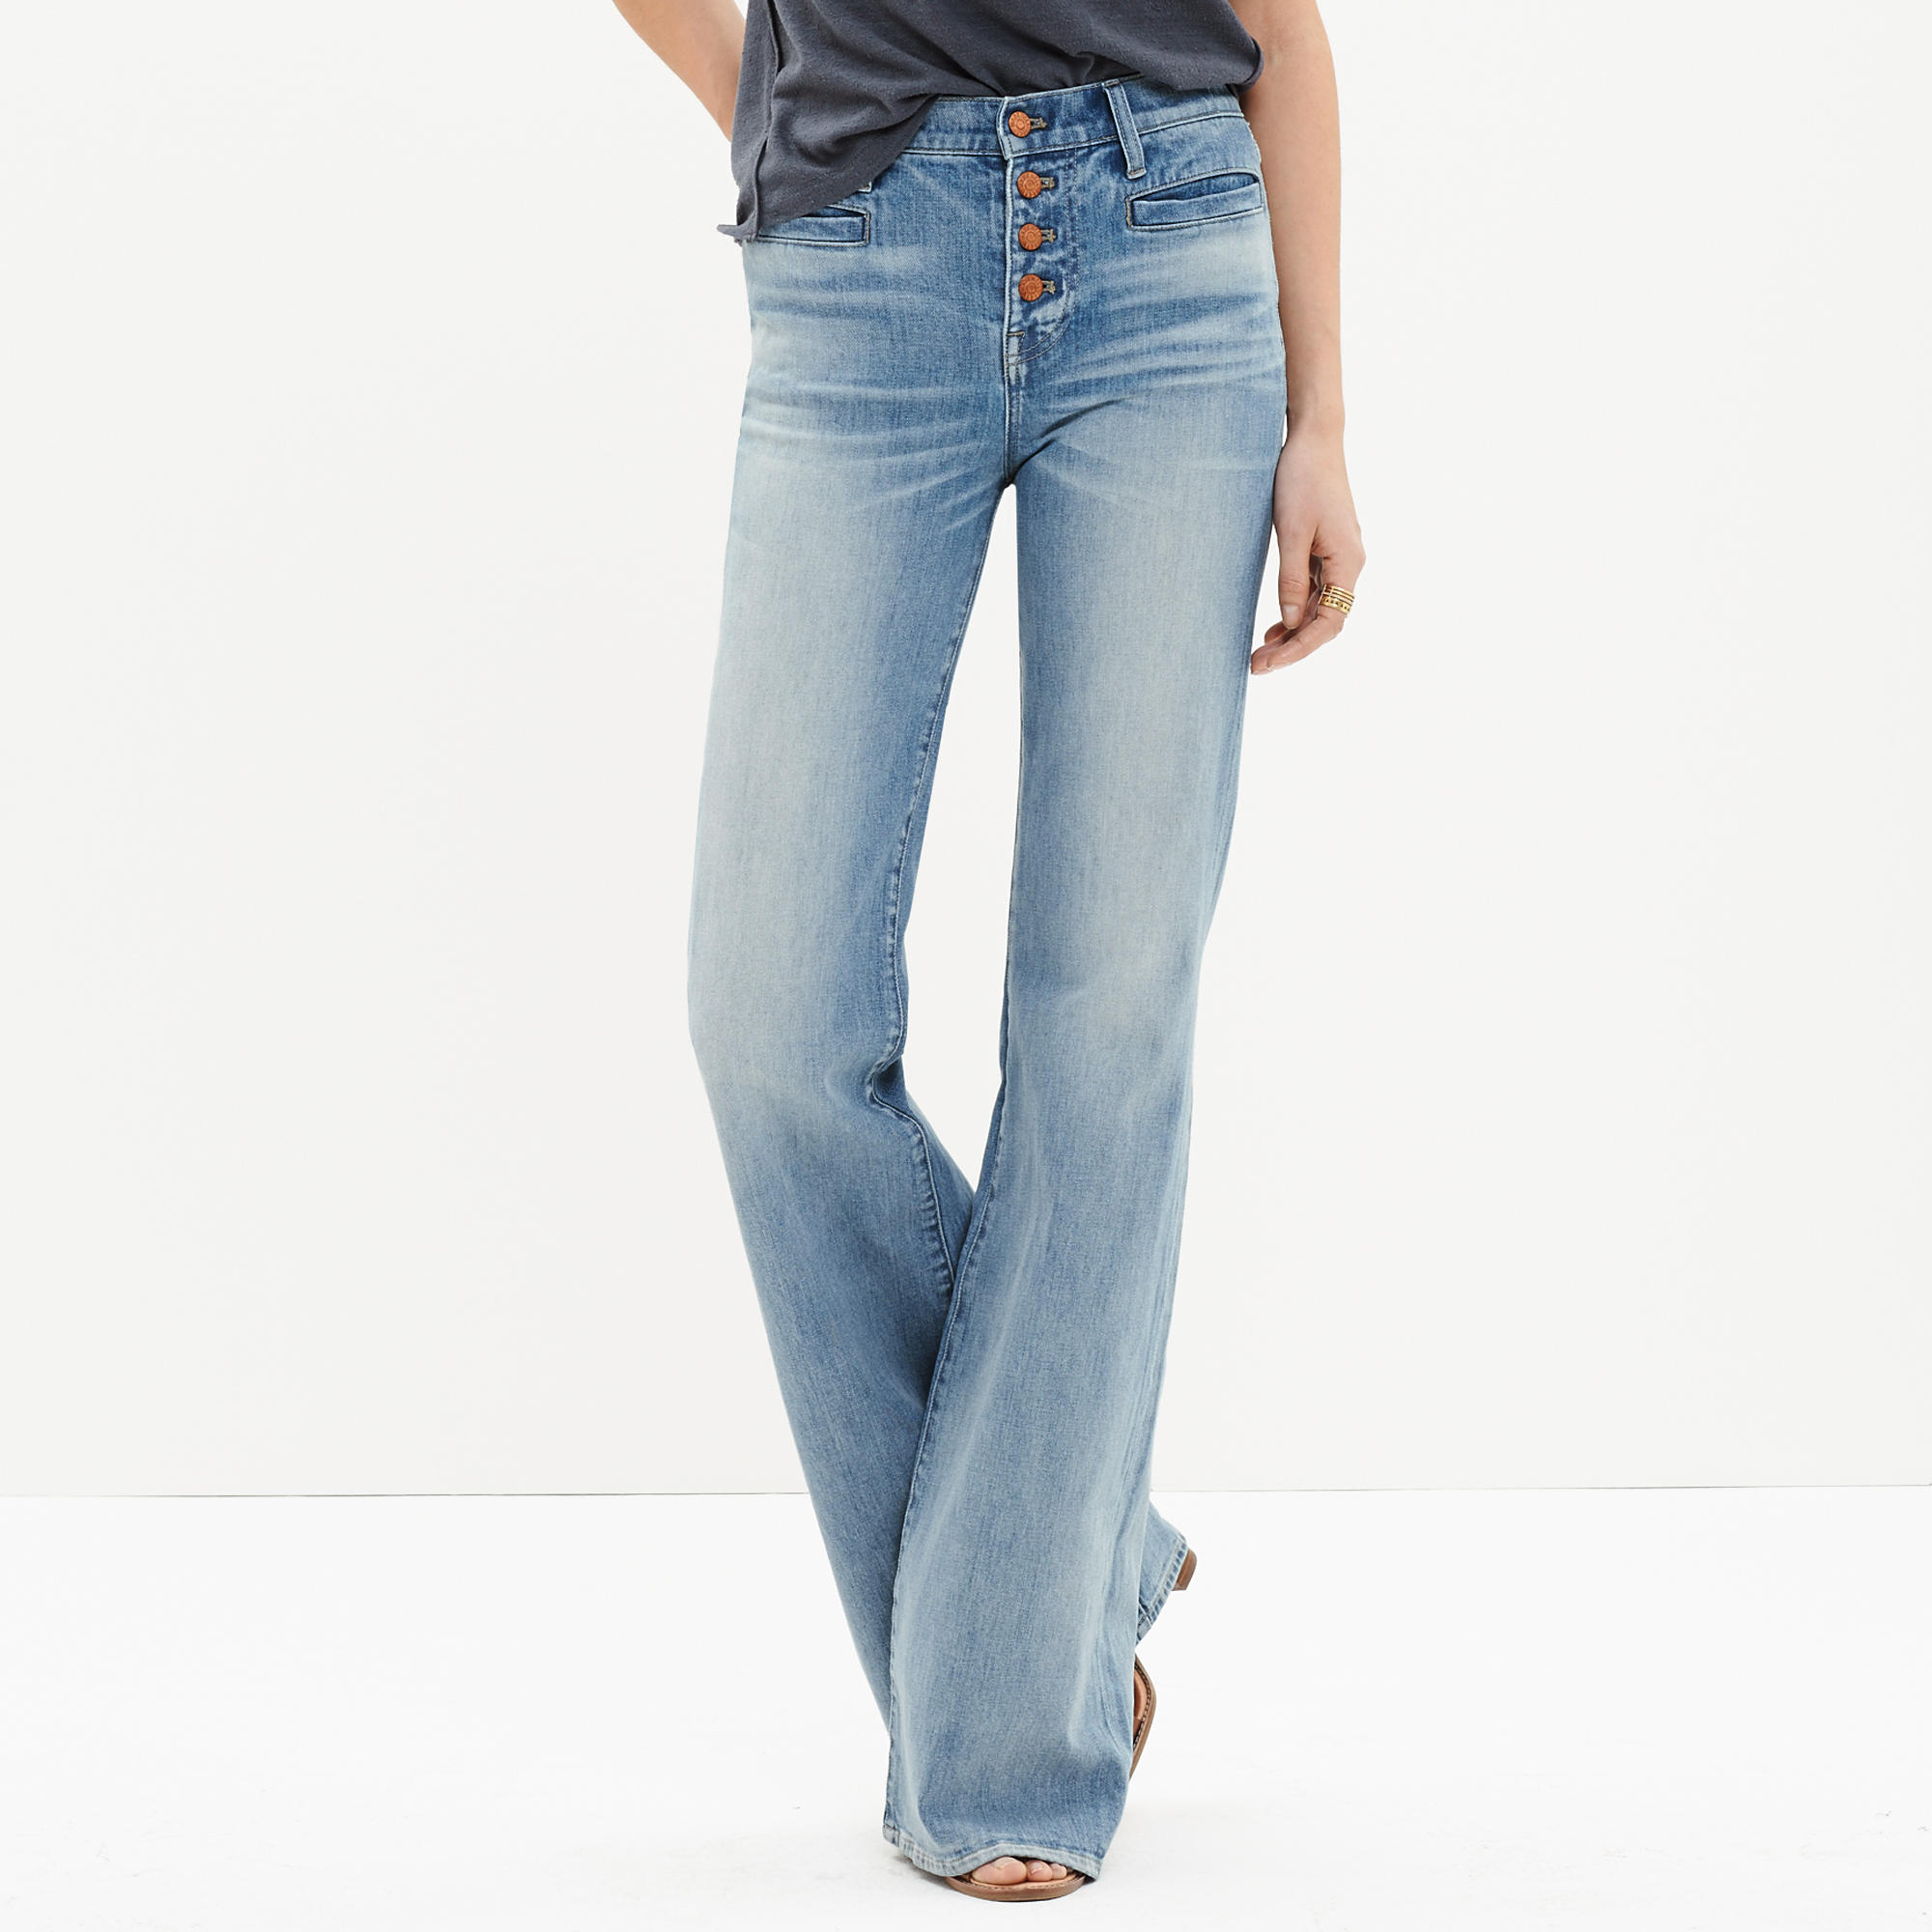 Flea market flares: button-front edition, Madewell, $135